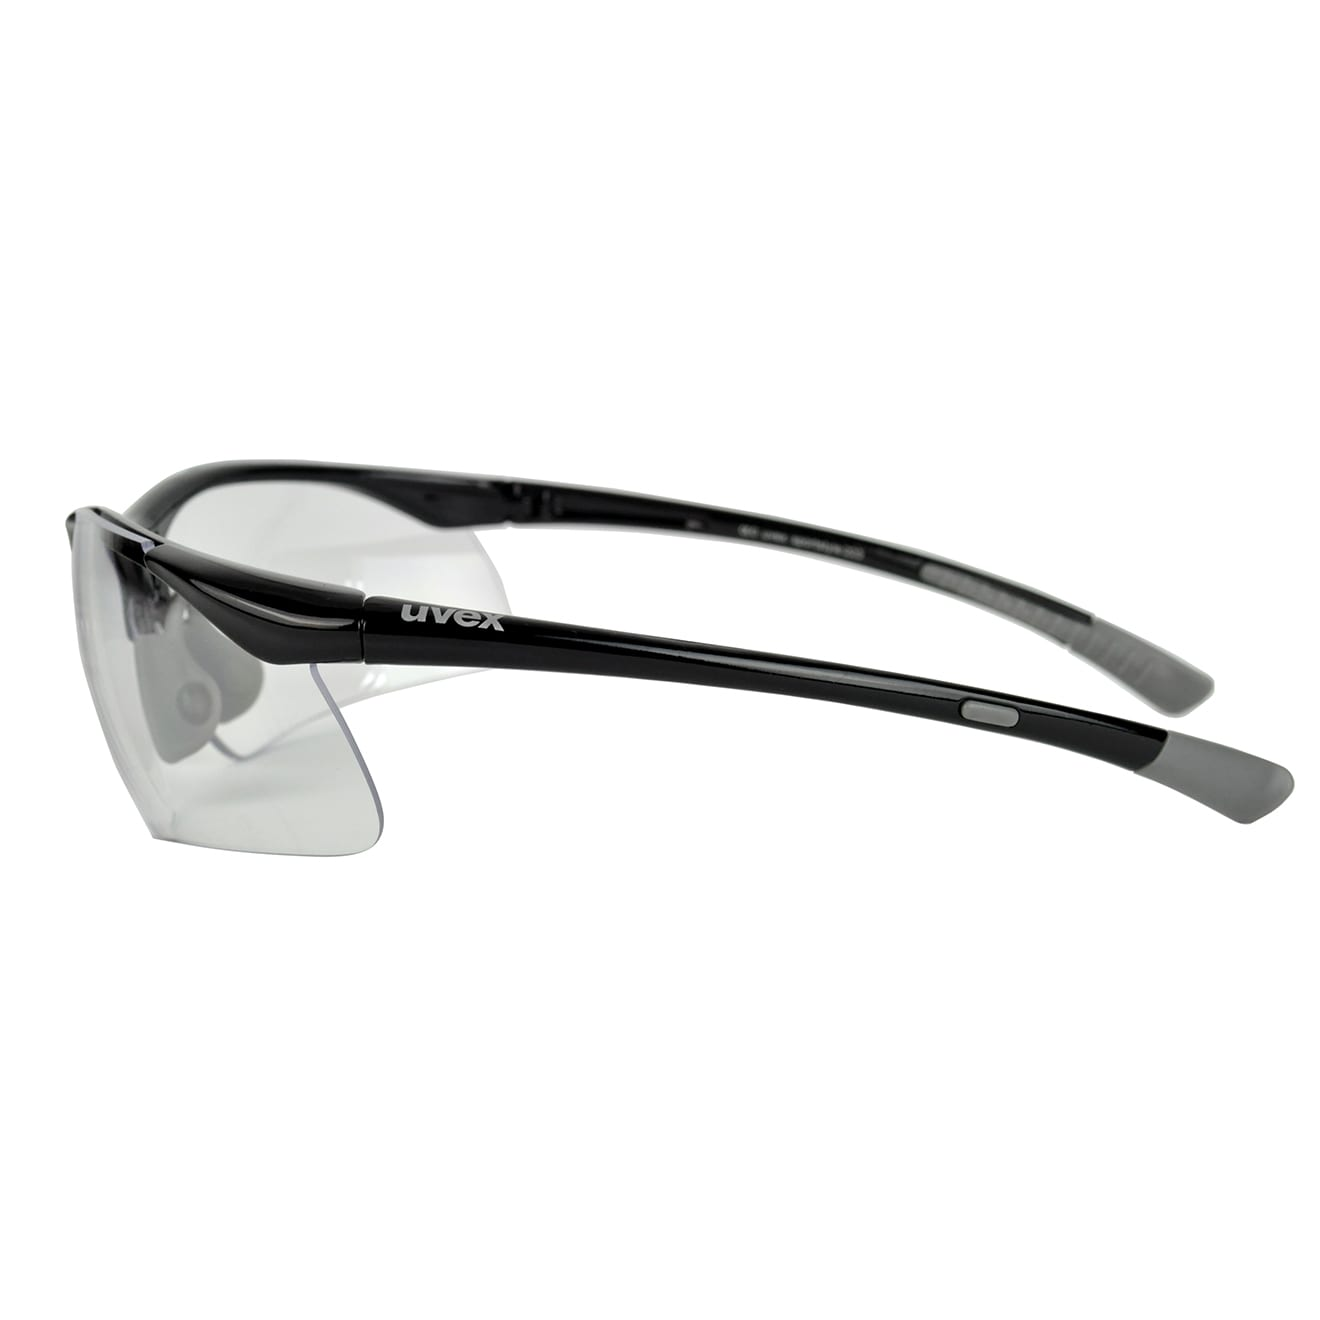 89948be7ae6 Clear Sports Glasses 2017 « Heritage Malta